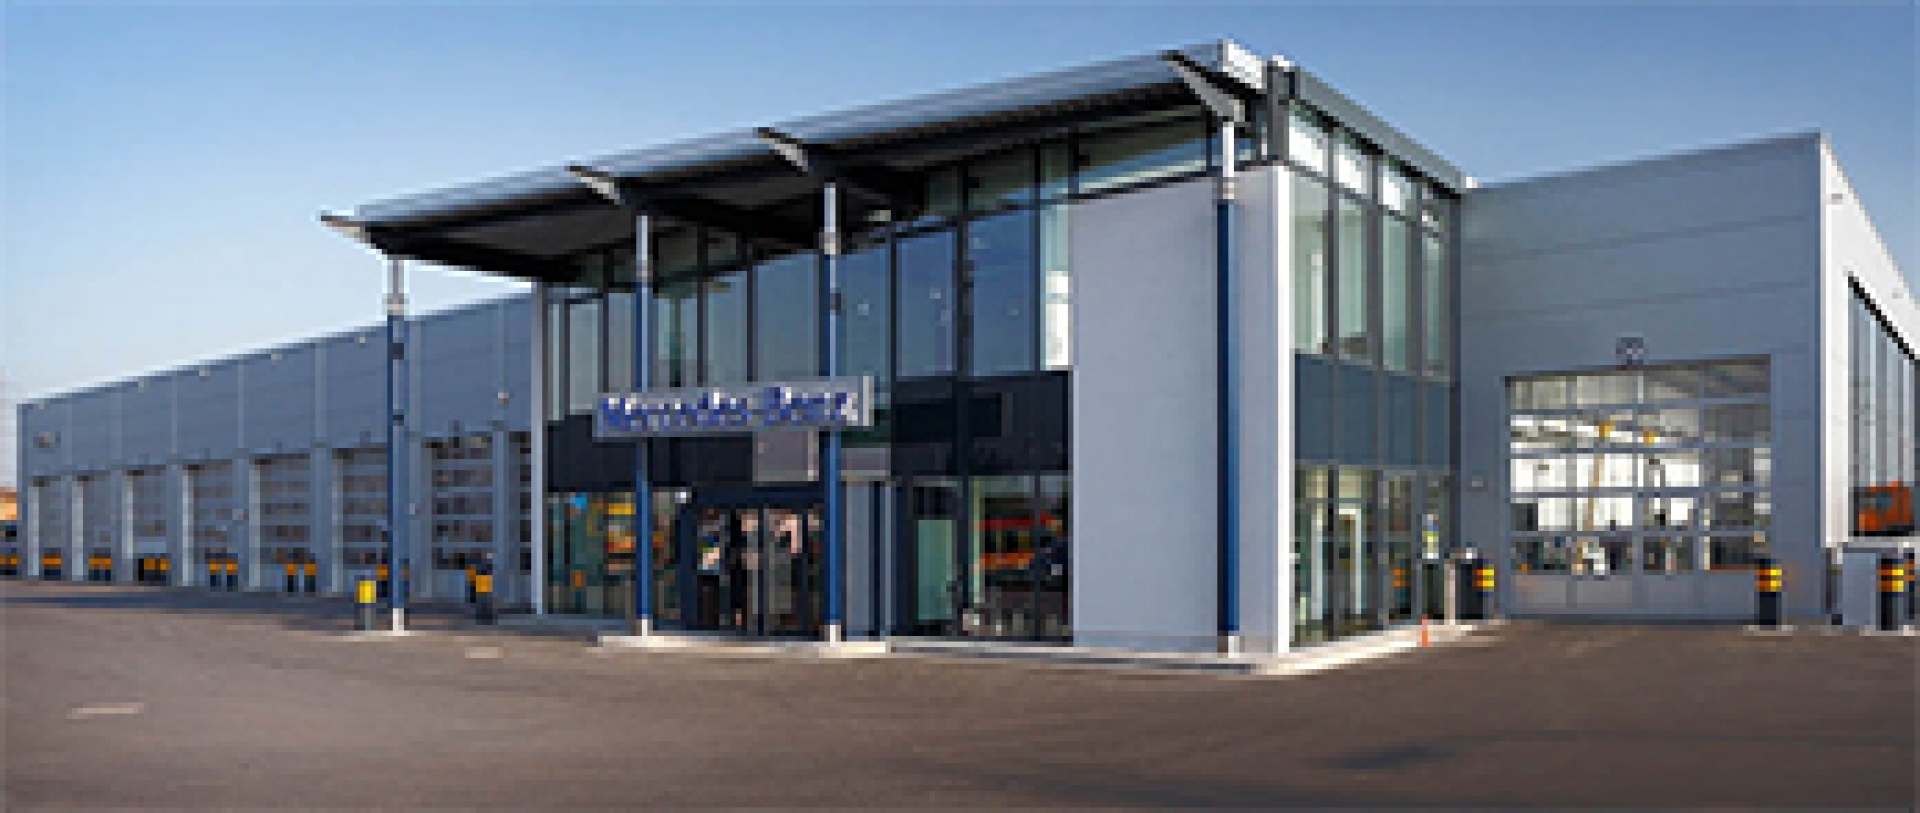 Mercedes benz roost nordparts s r l luxemburg for Mercedes benz luxembourg